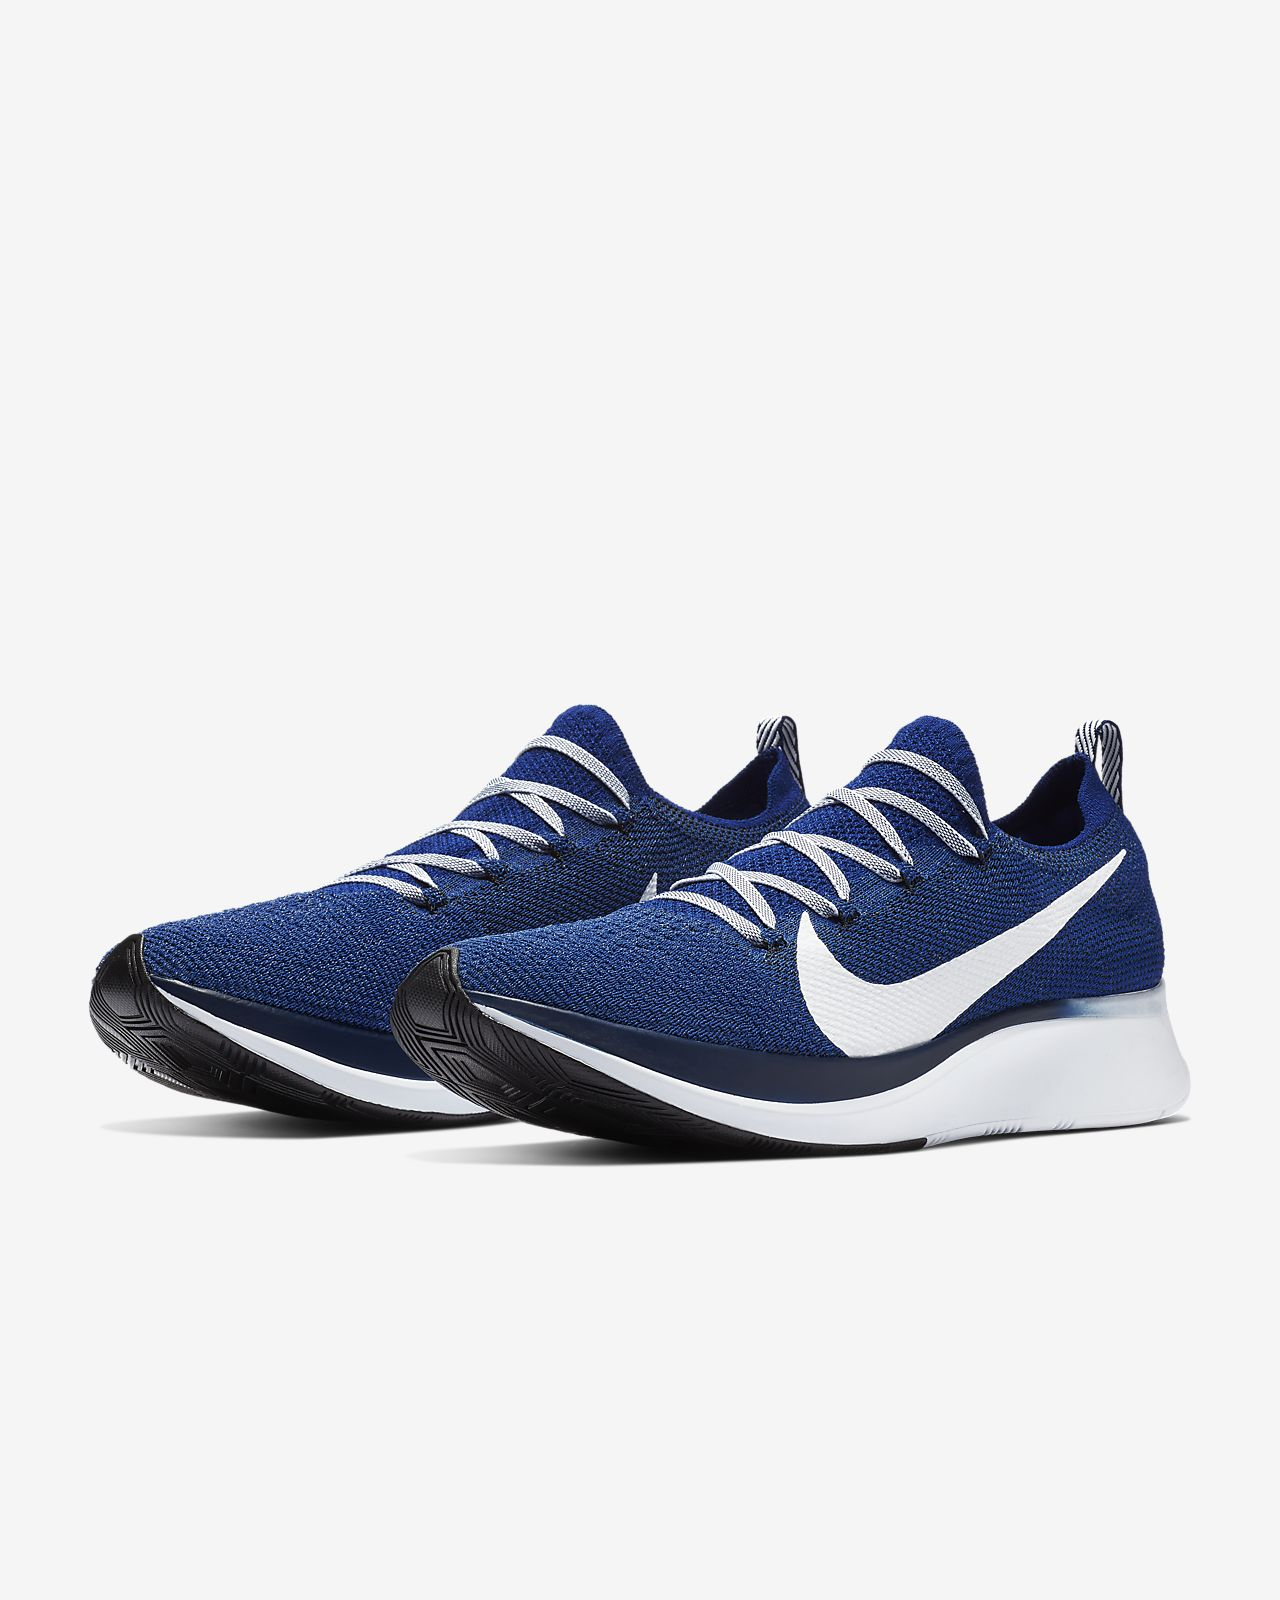 new style 8ebd9 ac453 ... Chaussure de running Nike Zoom Fly Flyknit pour Homme